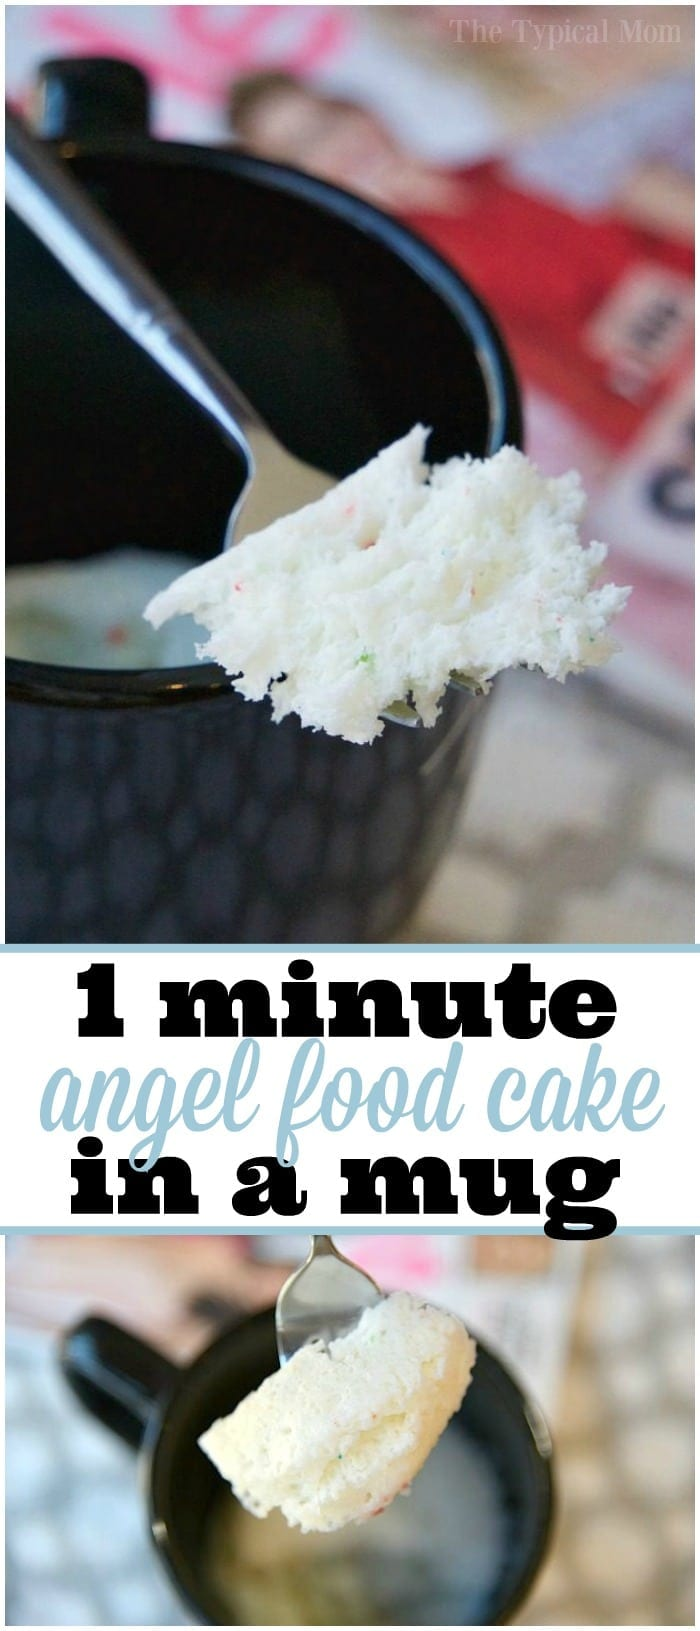 Easy Angel Food Cake in a Mug recipe that takes just 1 minute and it's done to perfection! Perfect dessert for one in a mug that's a guilt free treat.